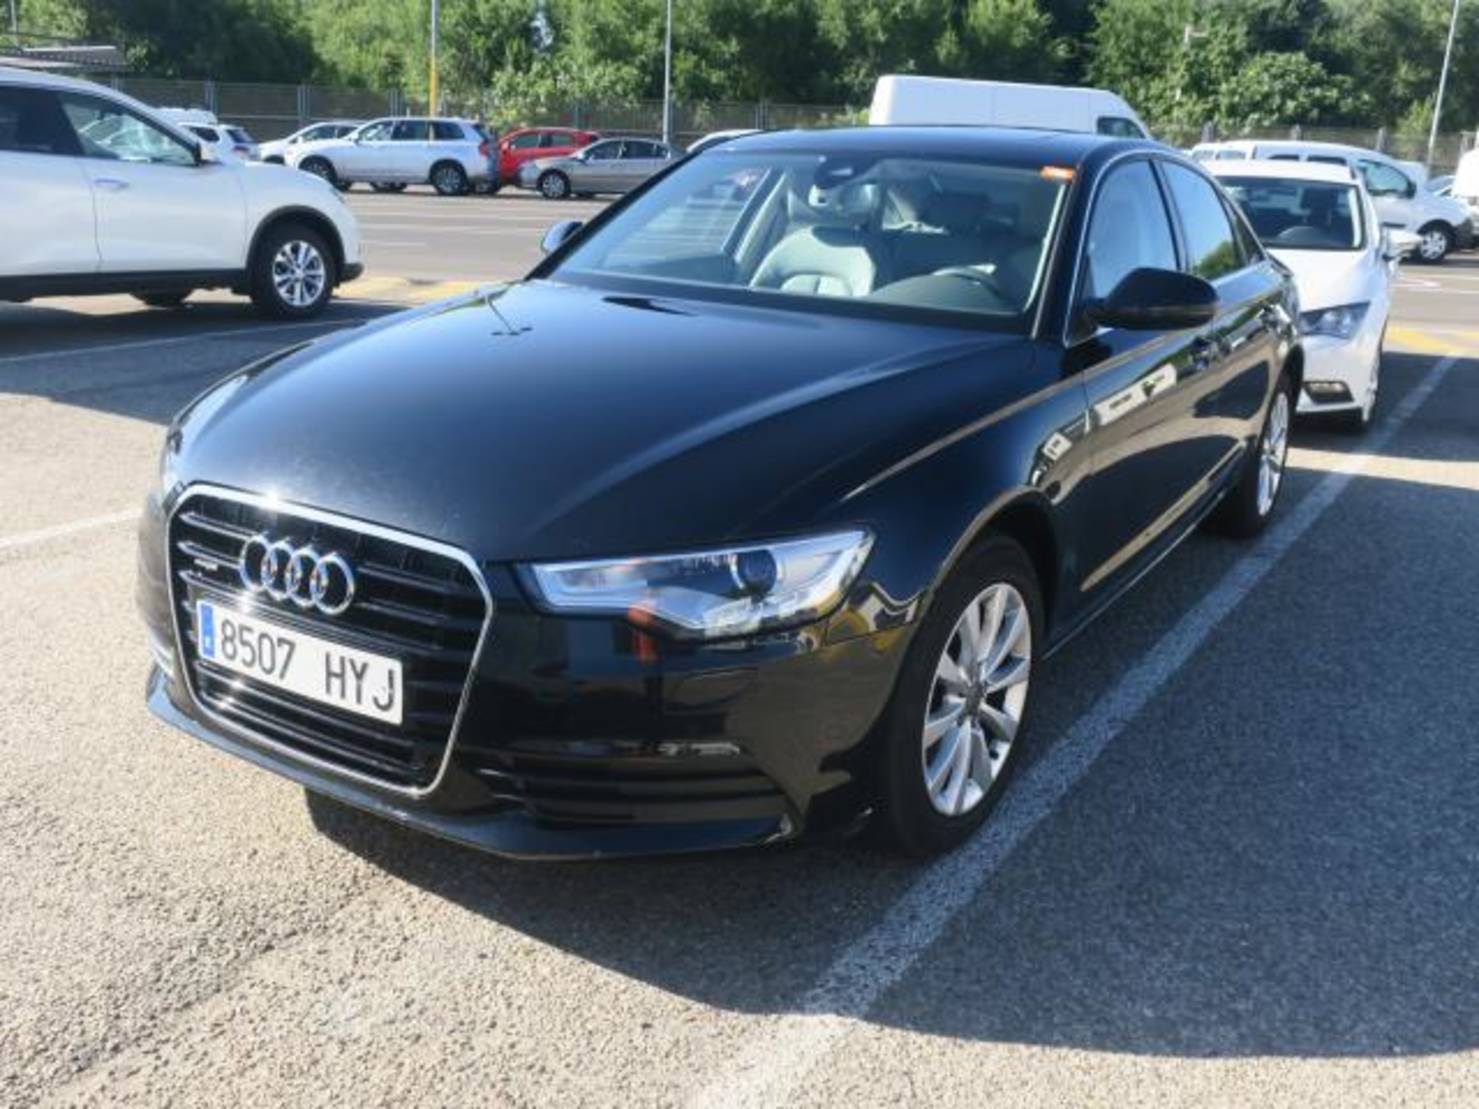 Audi A6 3.0TDI Advanced edition quattro S-T 204 detail1